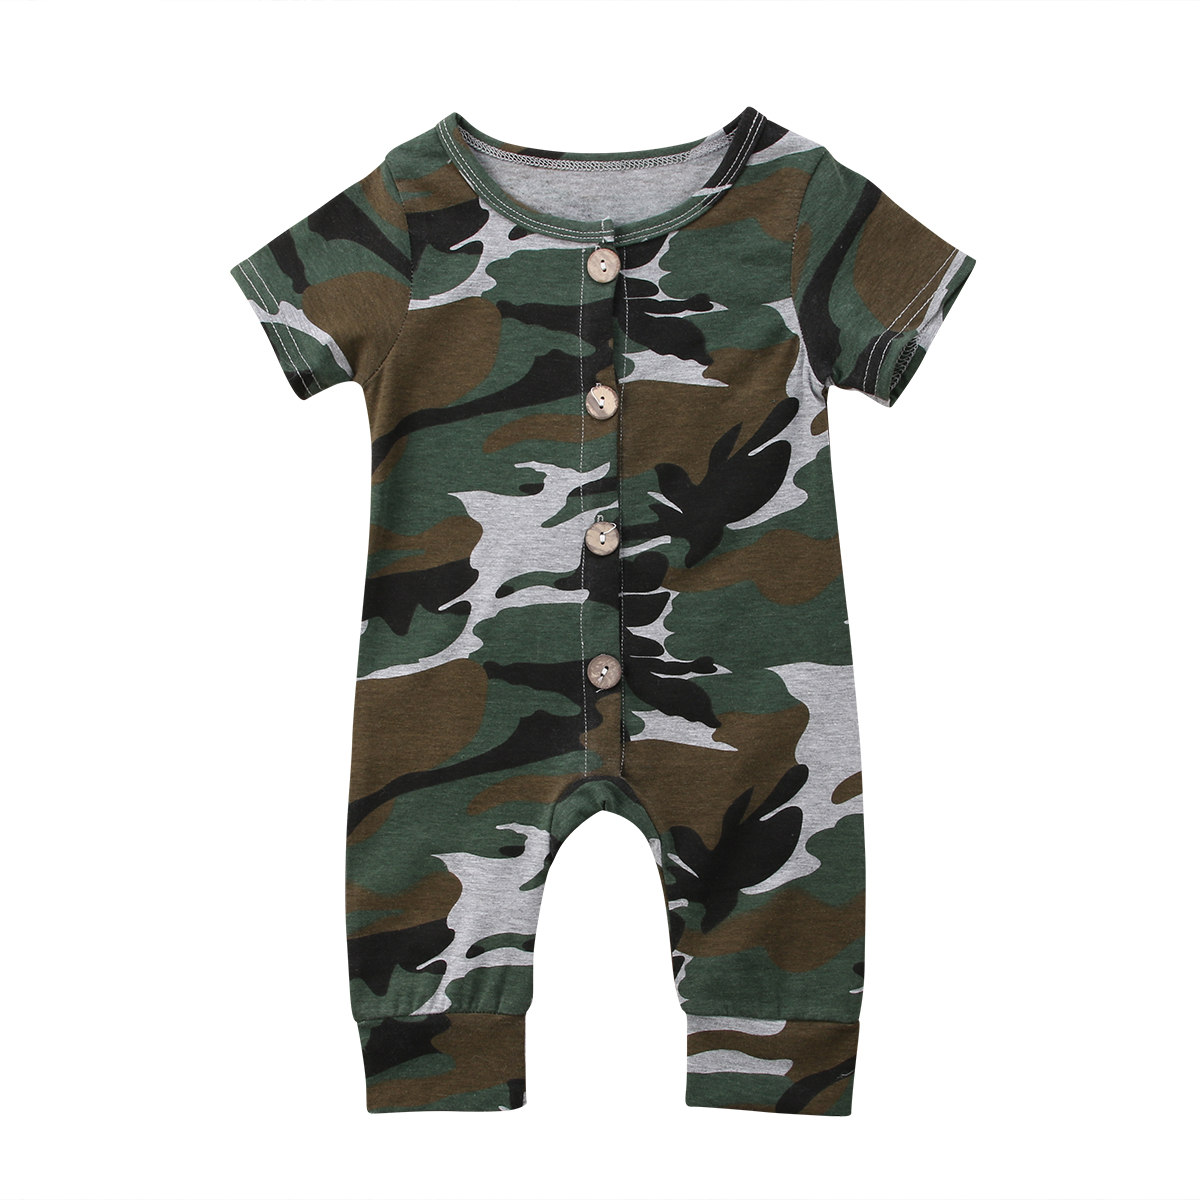 Newborn Infant Baby Boy Girl Cotton   Romper   Short Sleeve Jumpsuit Camouflage Clothes Outfits